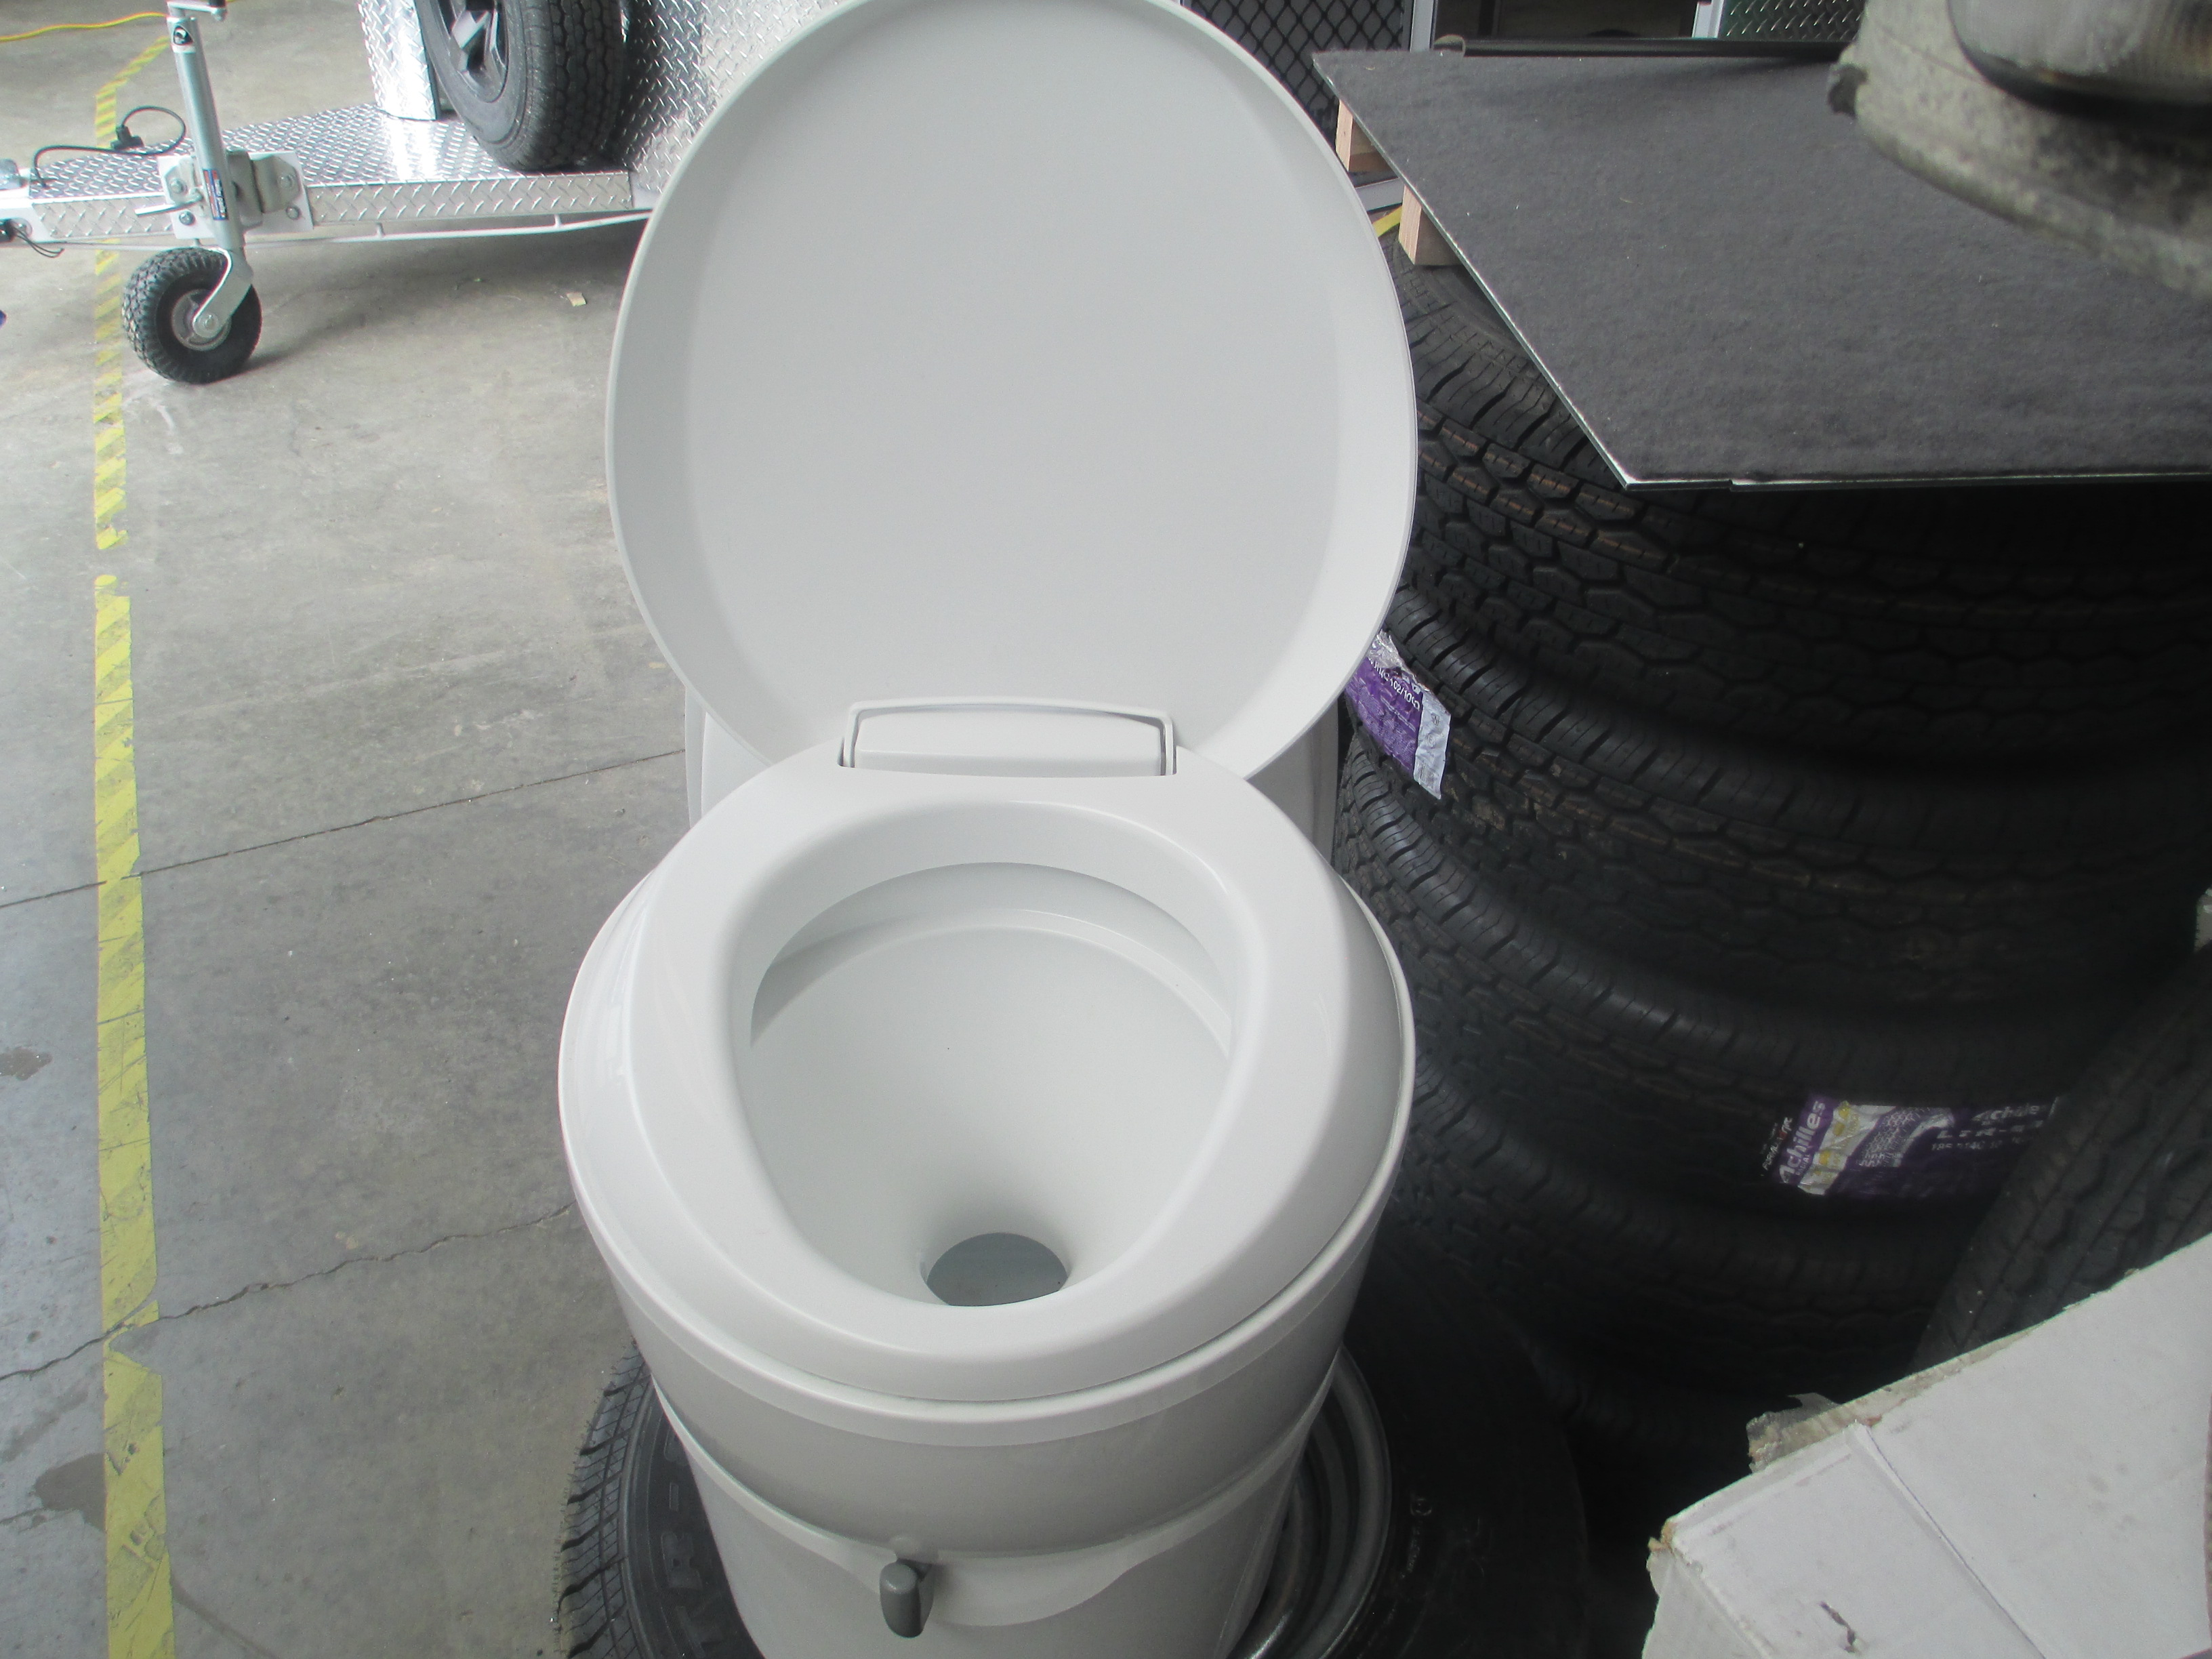 Thetford C223cs Swivel Toilet With Access Door Included Discount Rv Parts